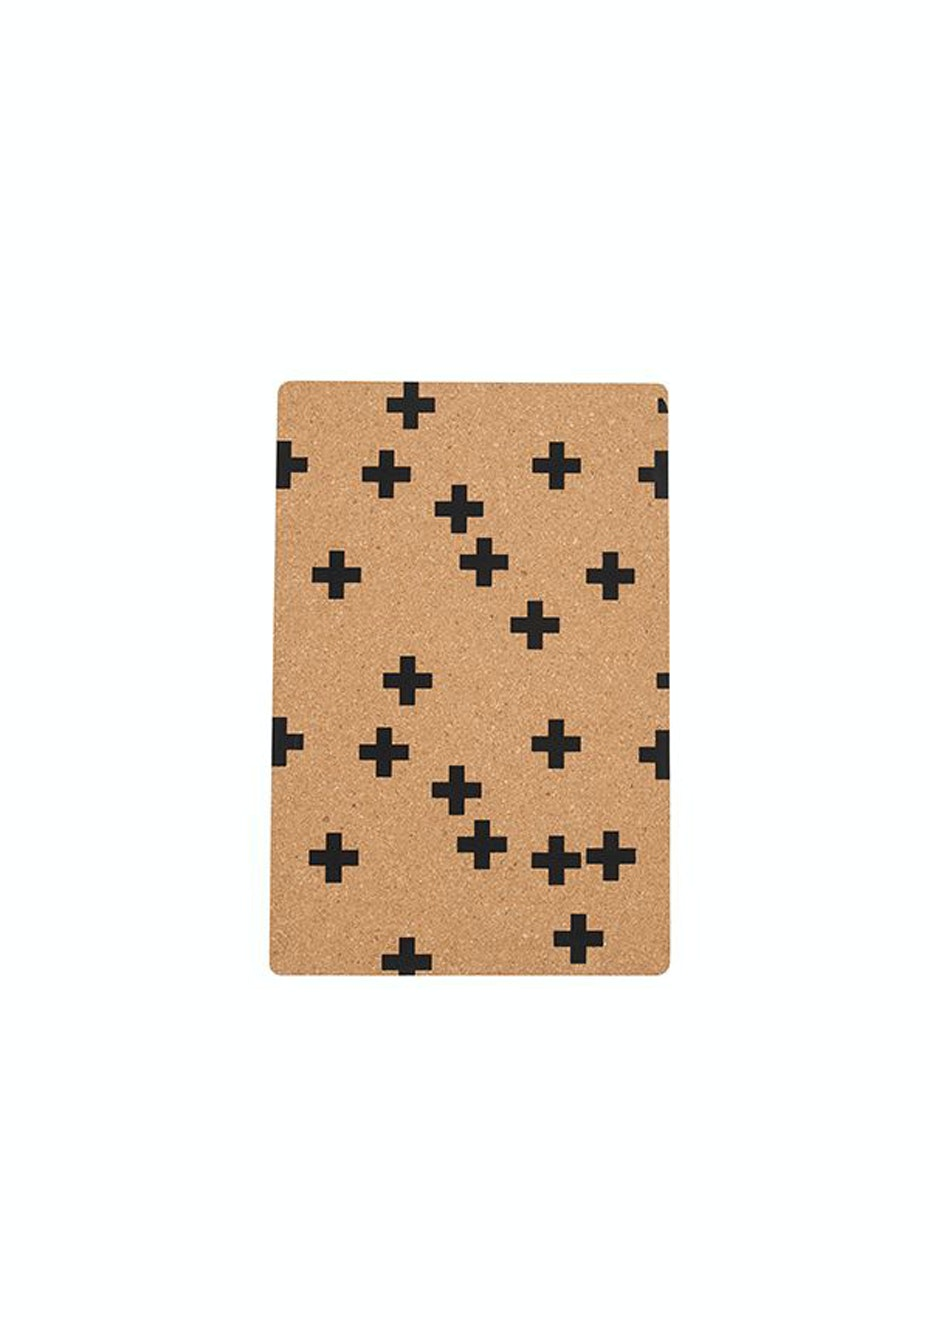 General Eclectic - Cork Placemat Crosses Set of 4